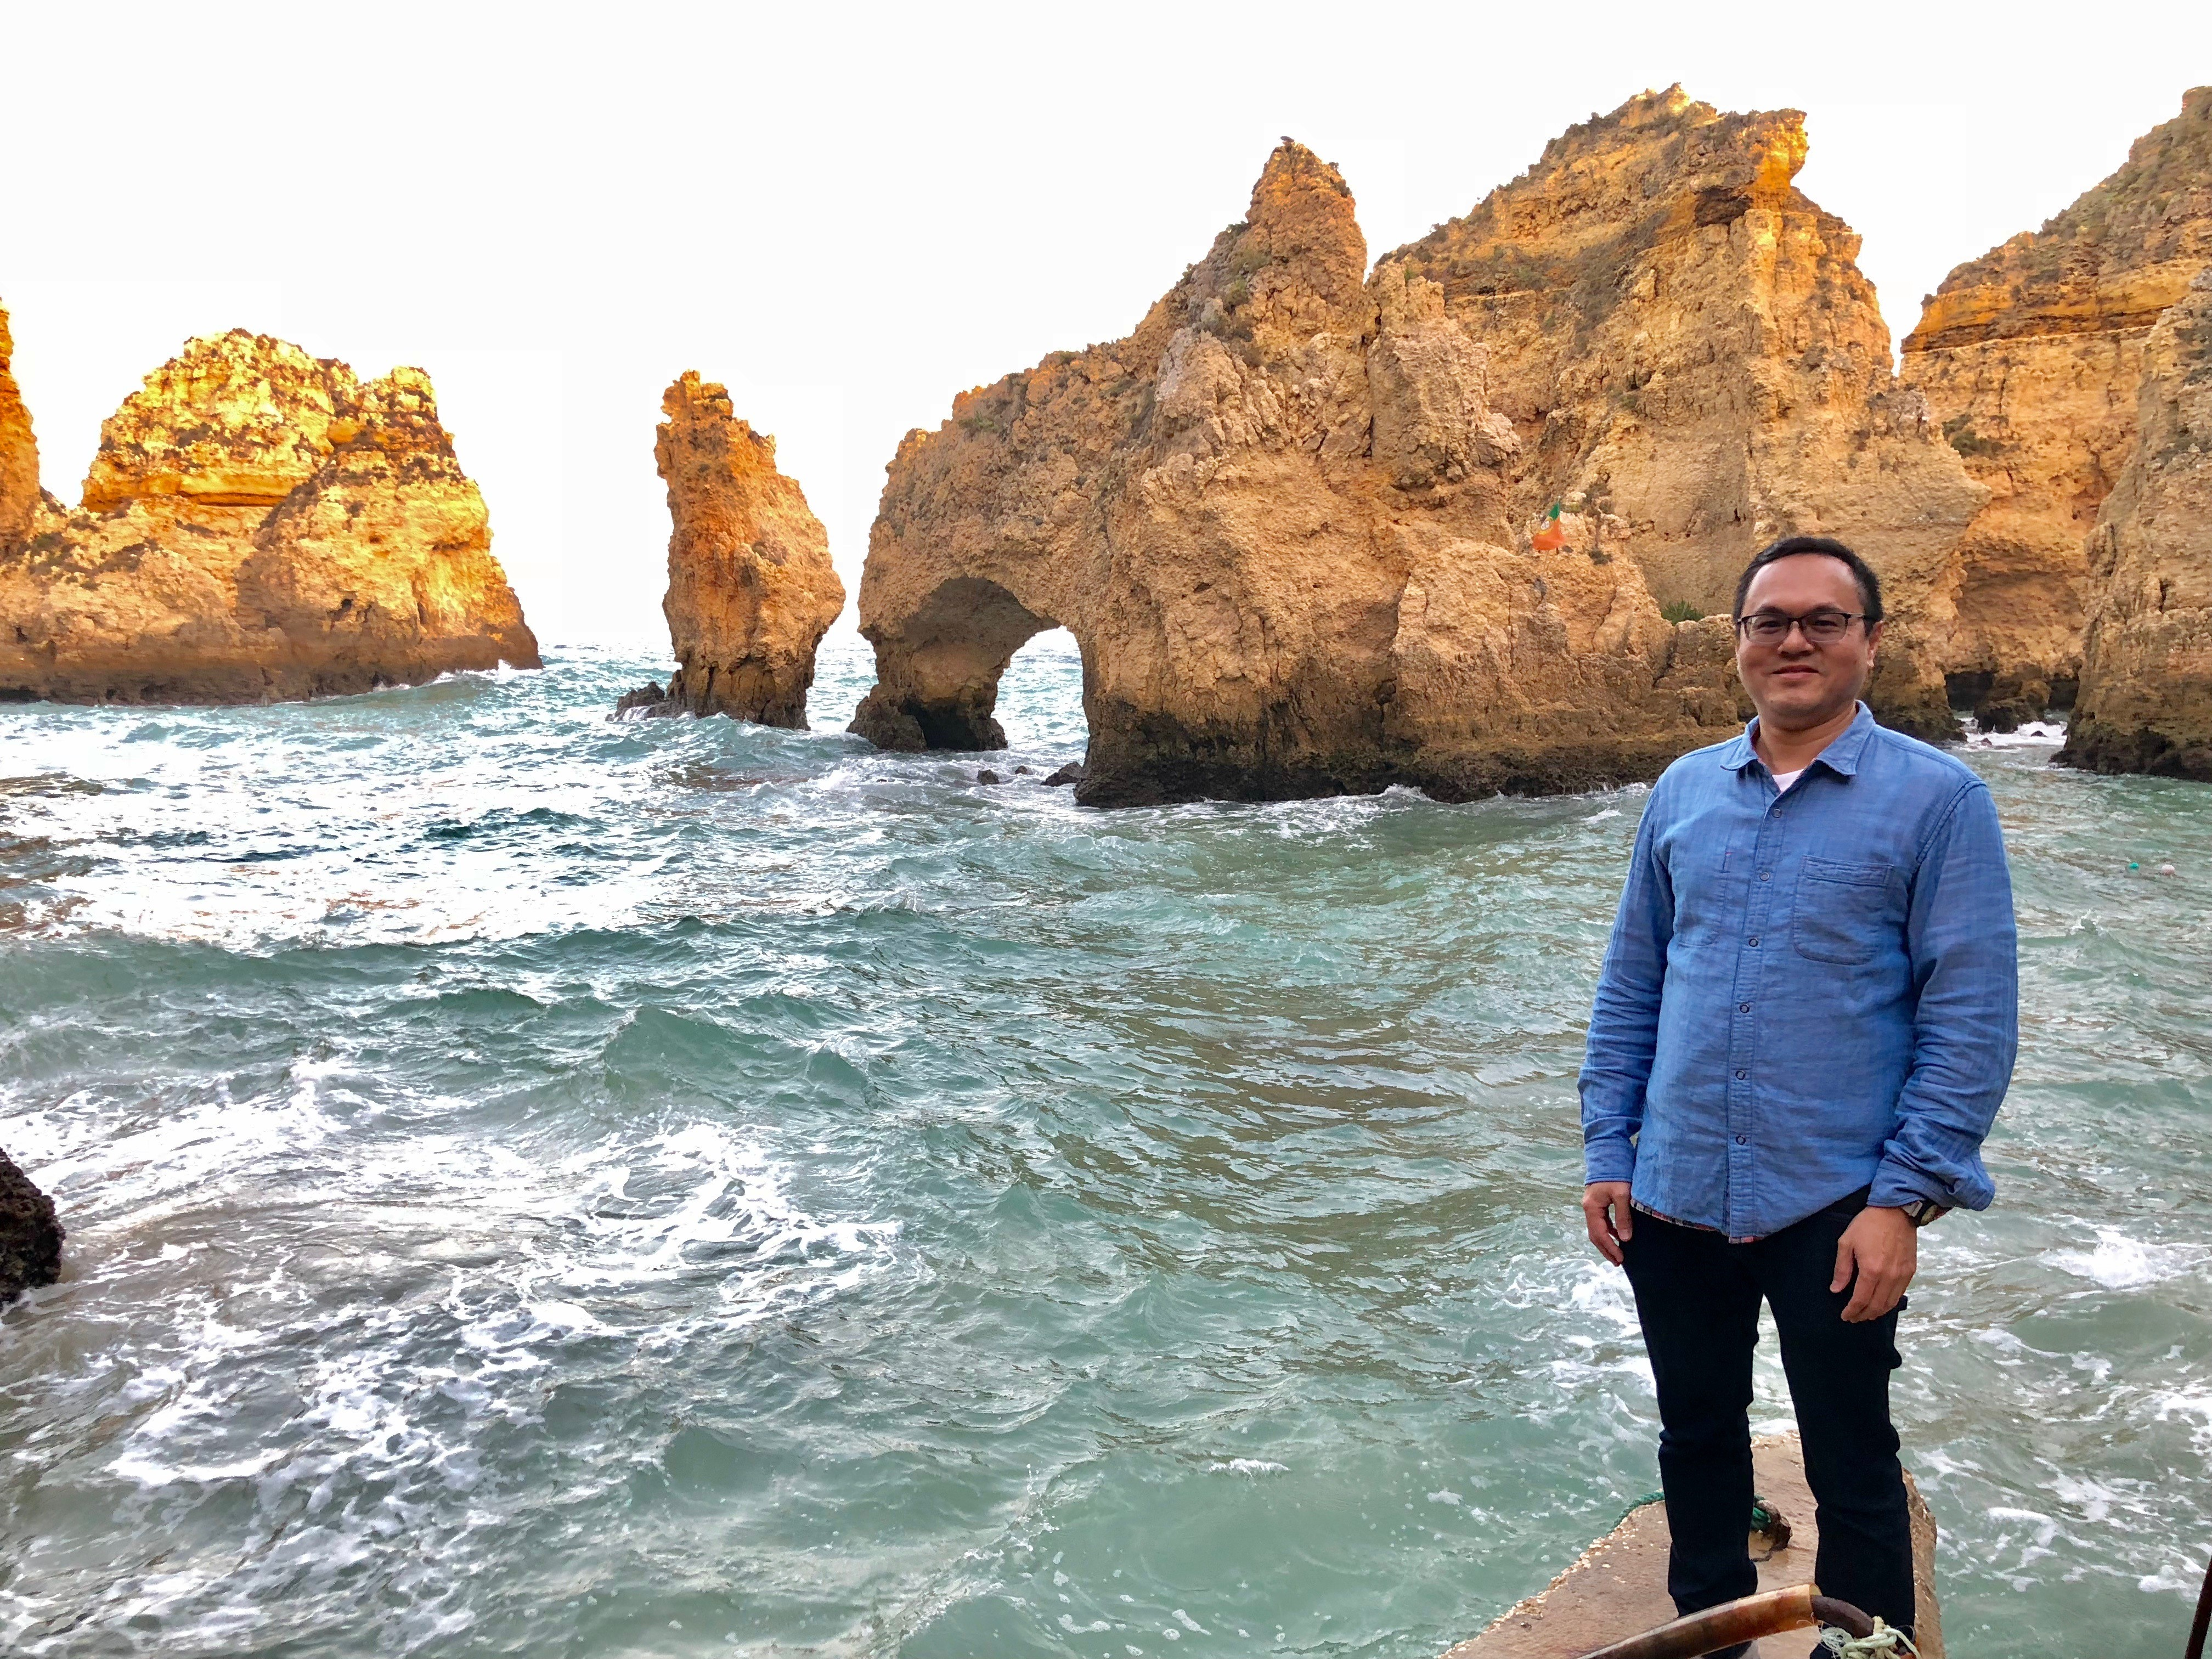 Harold visits the Ponta da Piedade in Algarve, Portugal.